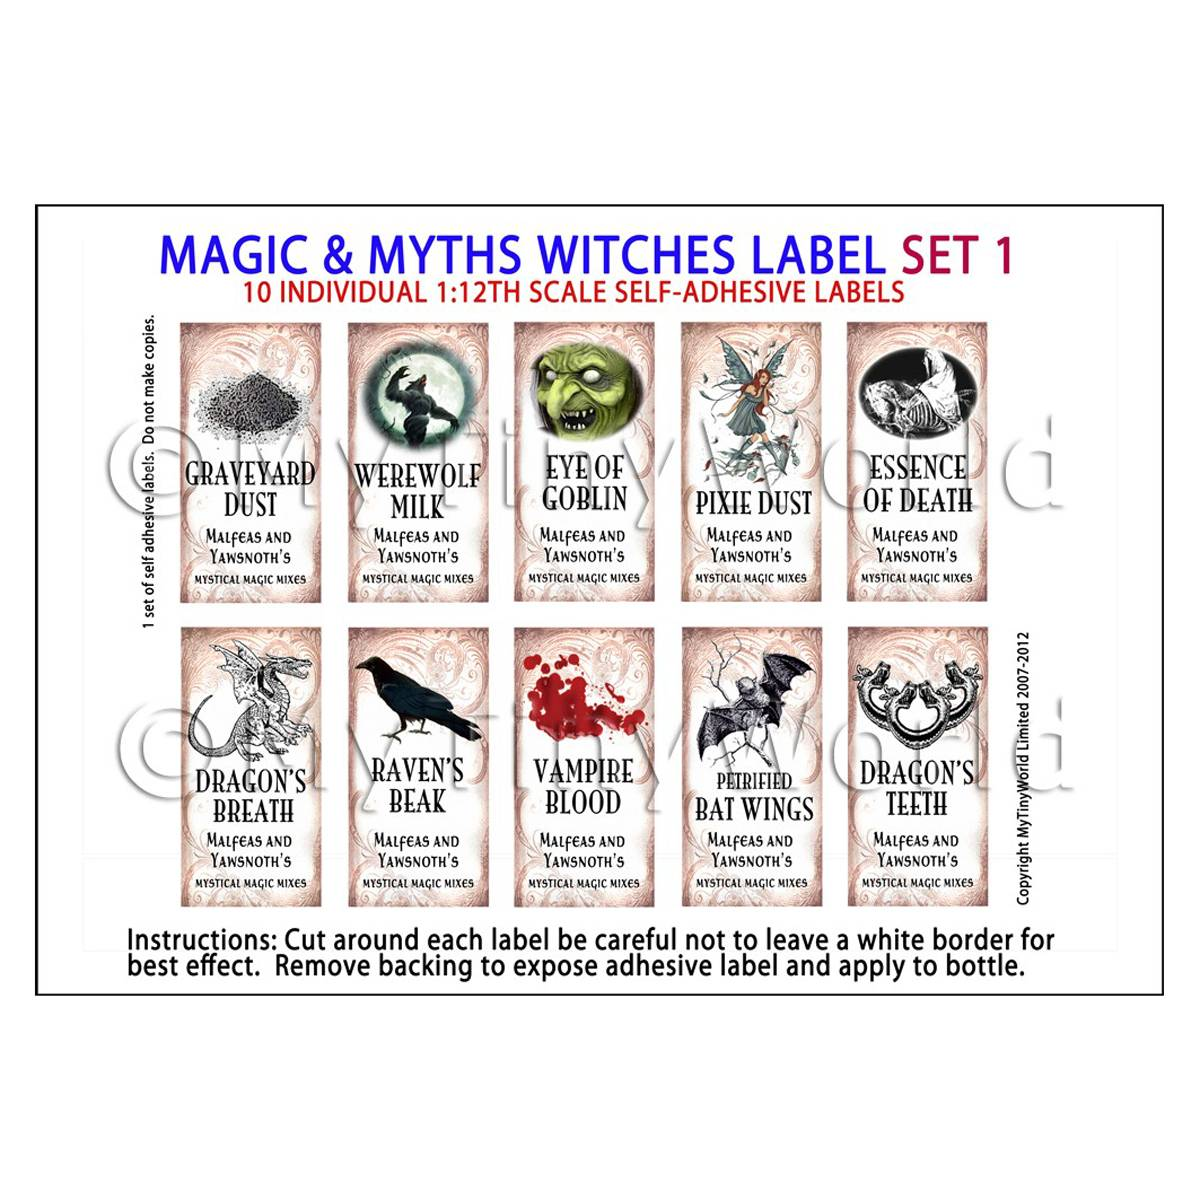 Dolls House Miniature Myth And Magic Label Set 1